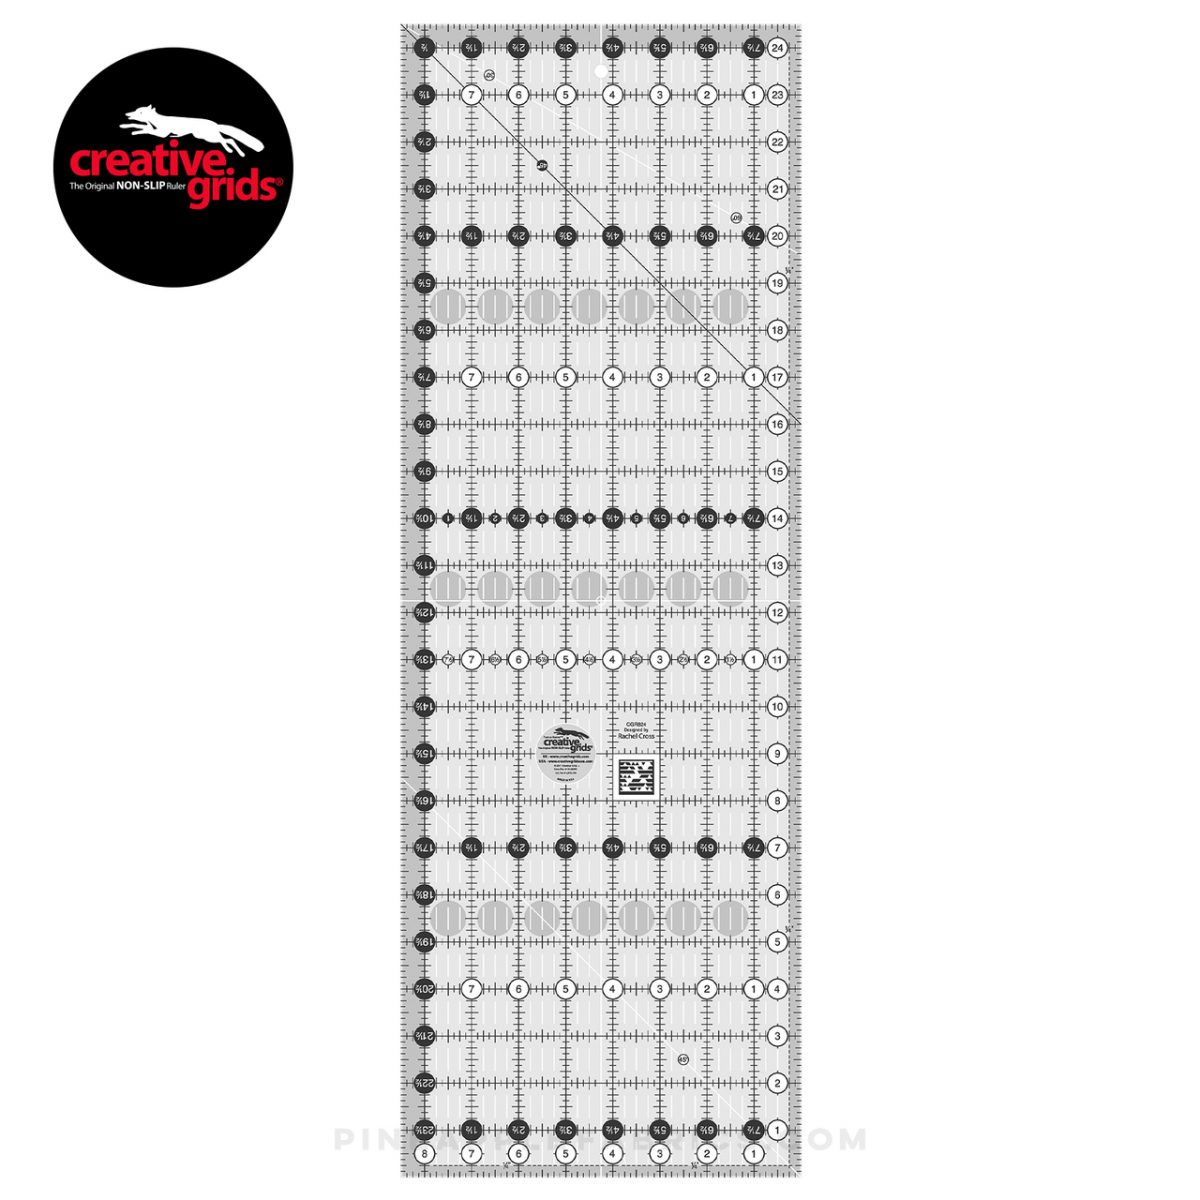 CGR824 - Creative Grids Quilt Ruler 8-1/2in x 24-1/2in